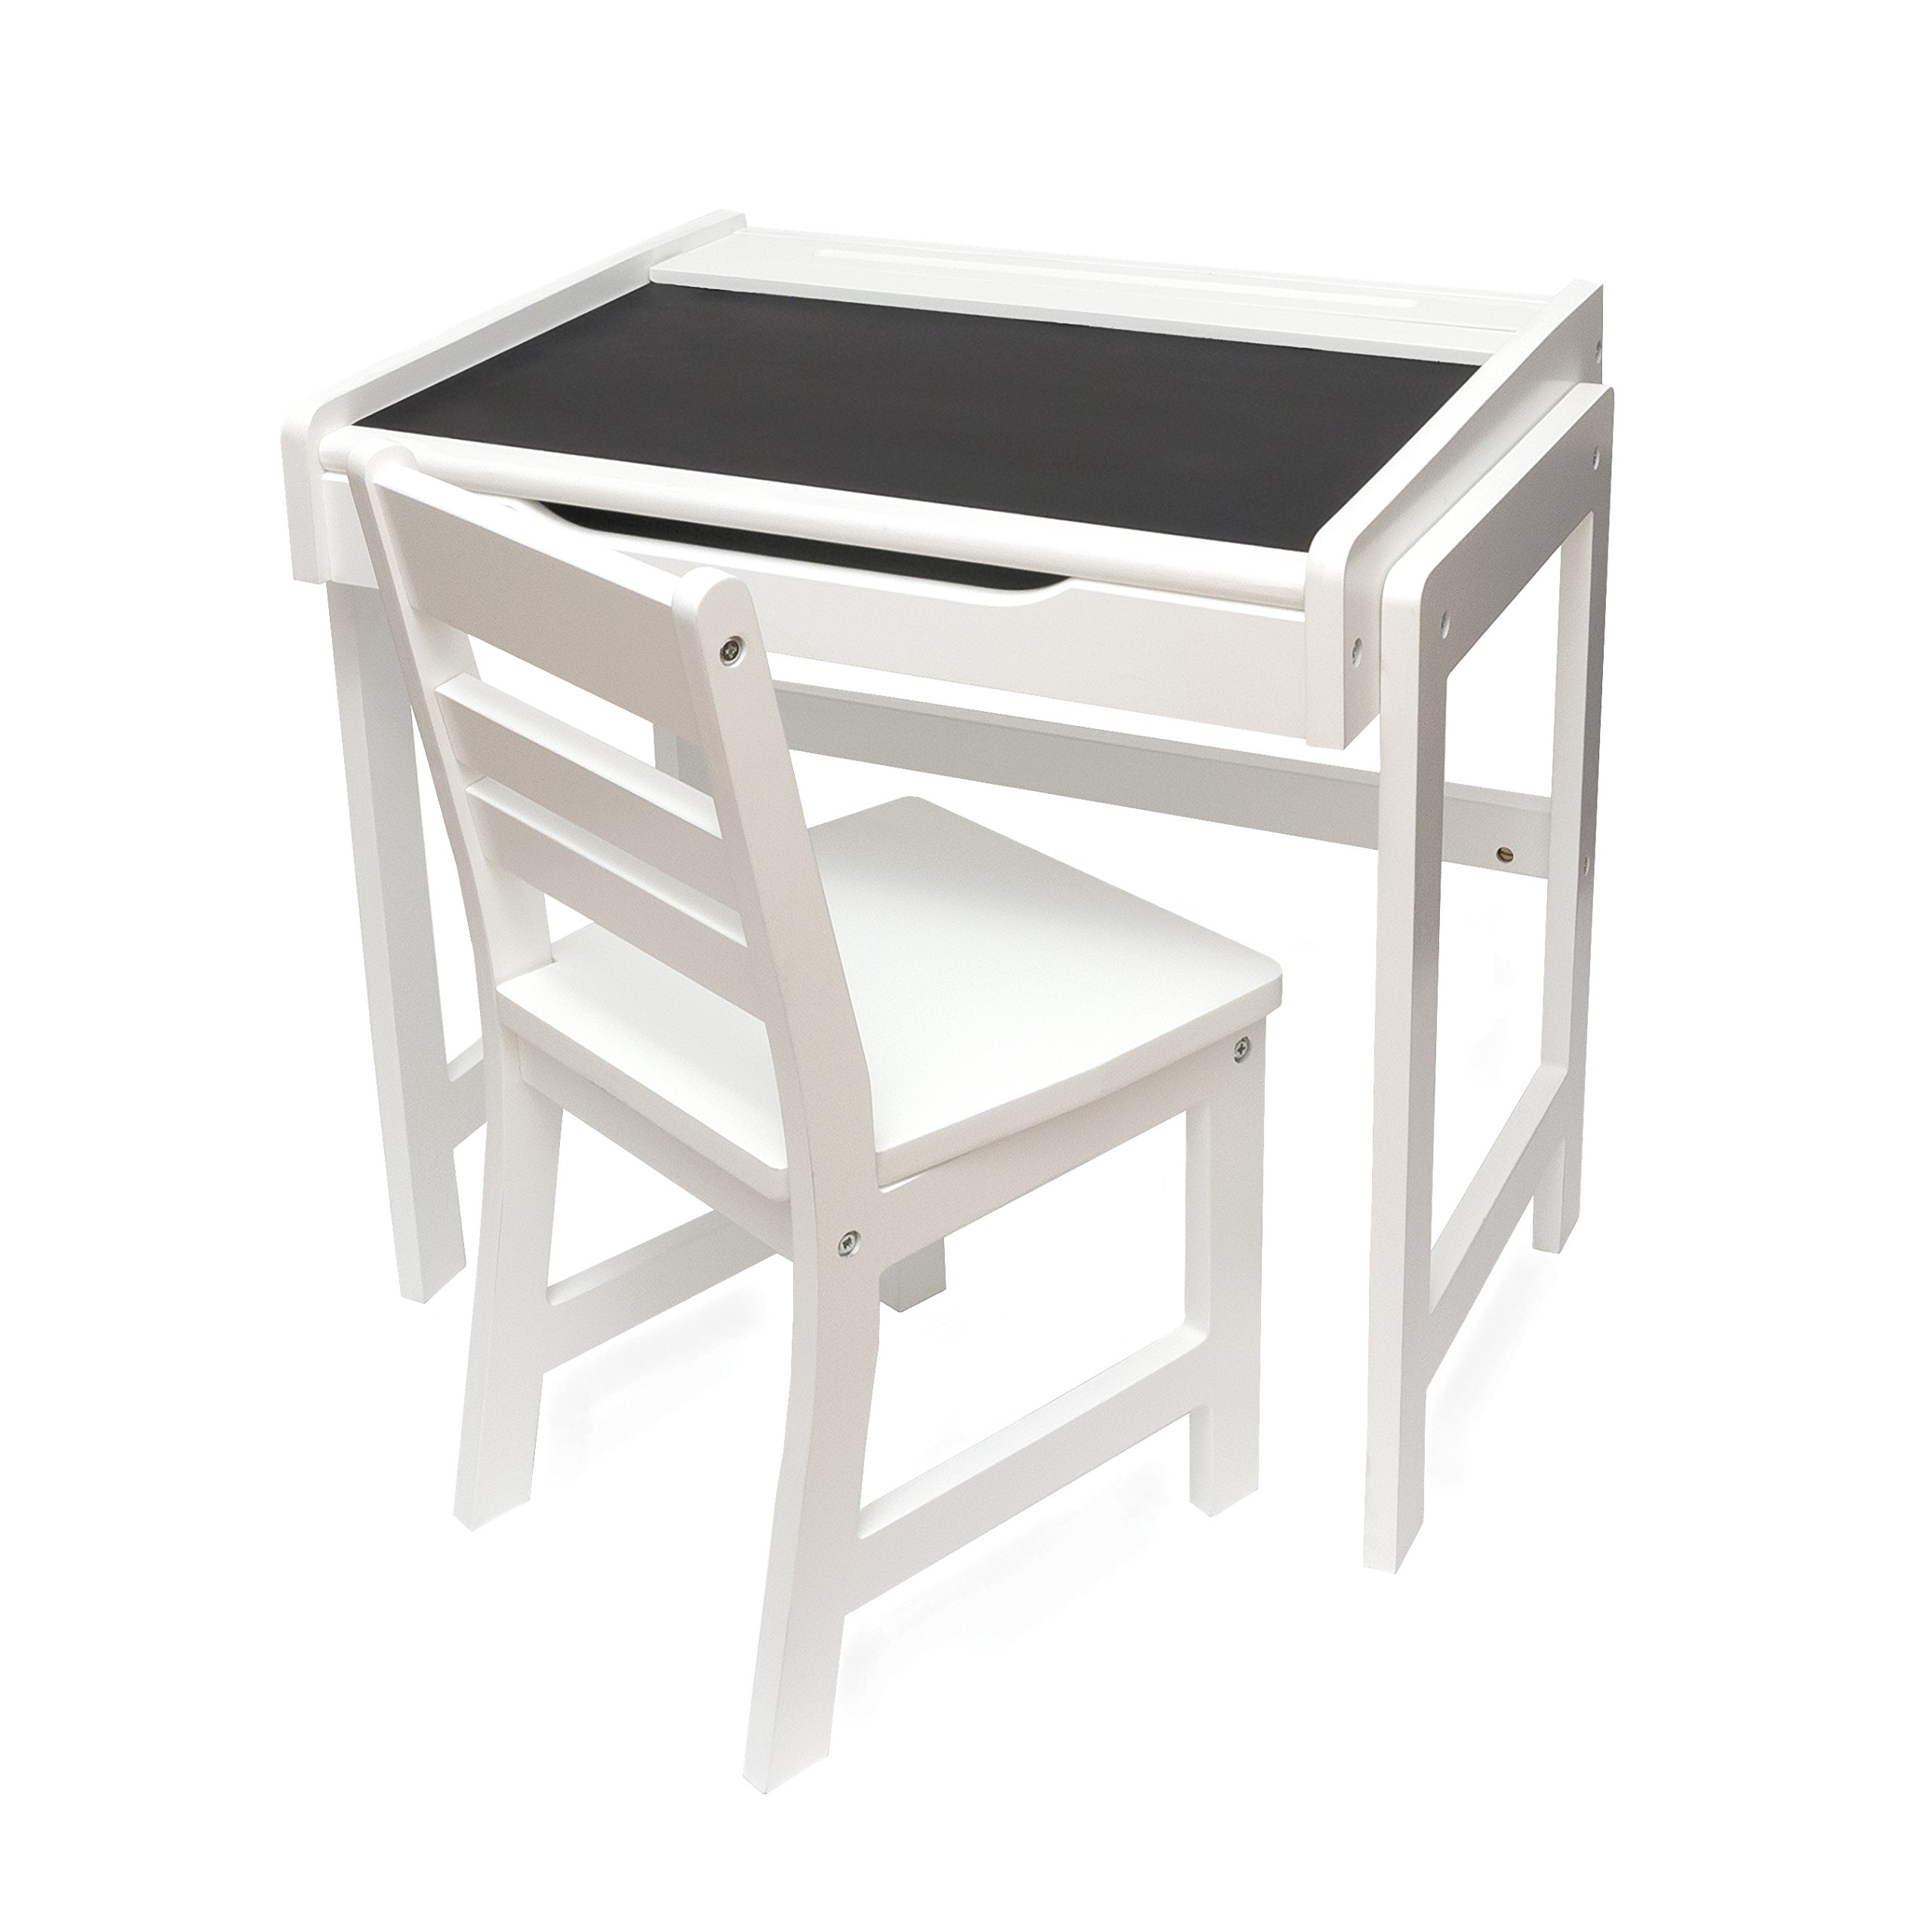 Lipper International 554AW Child's Desk with Chalkboard Top & Chair, Antique White